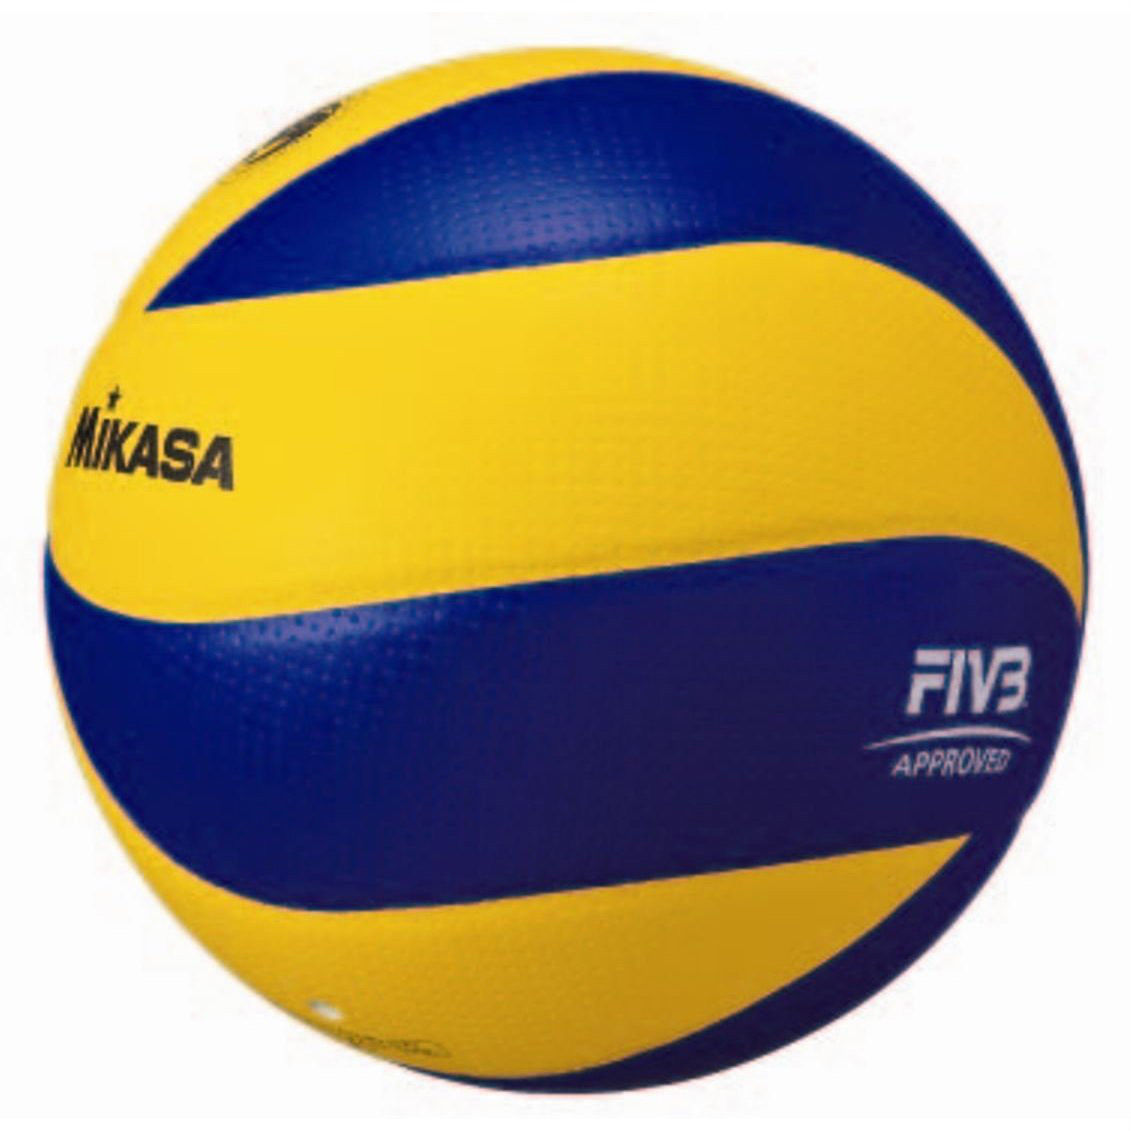 Mikasa FIVB Volleyball Official 2016 Olympic Game Ball